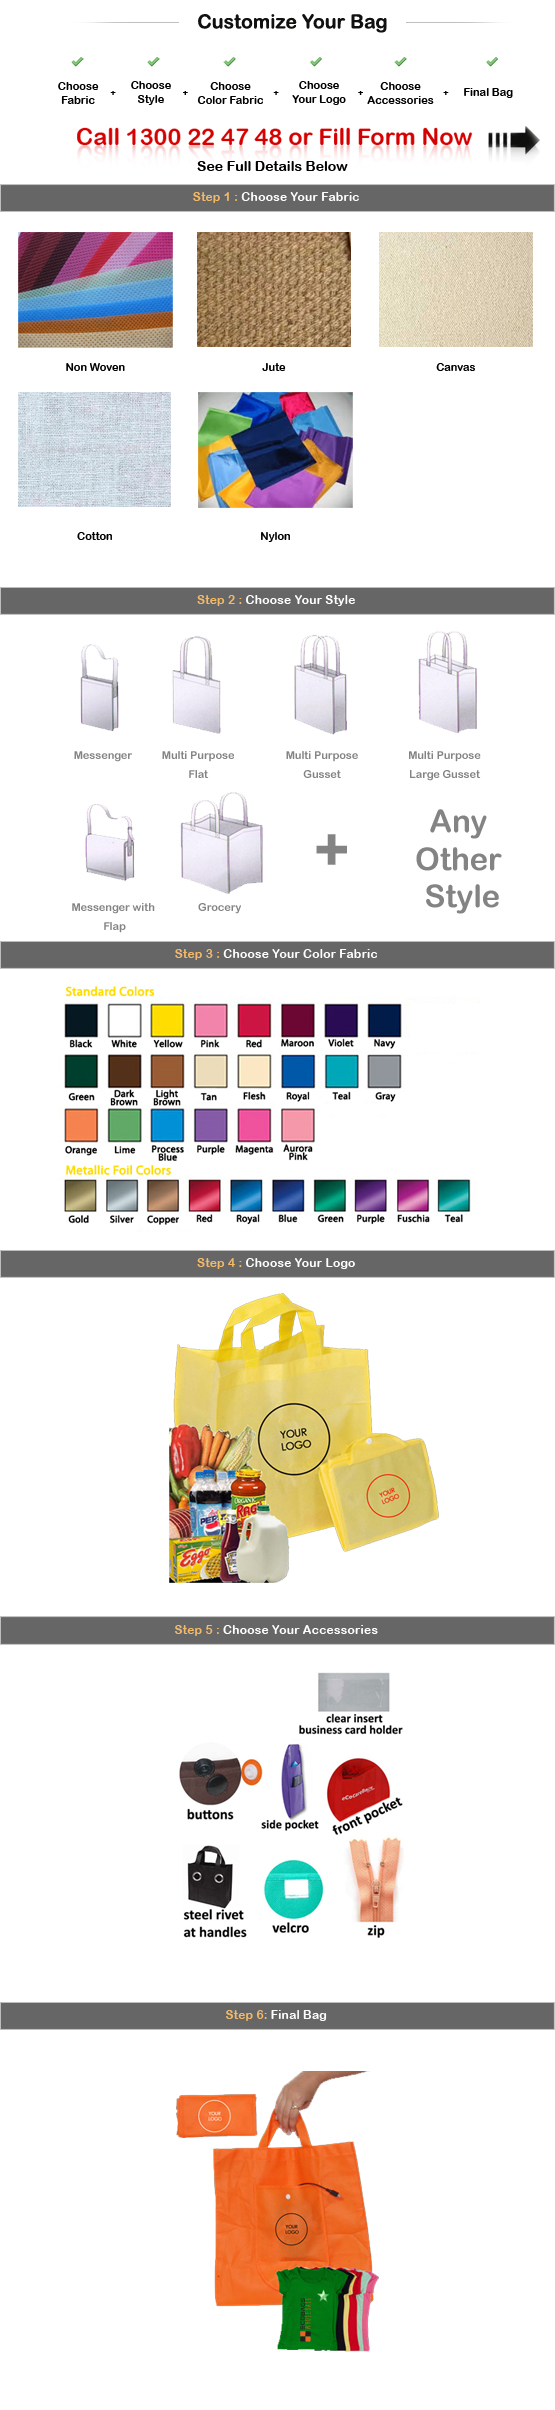 design-your-bag-eco-bags-wholesale.jpg